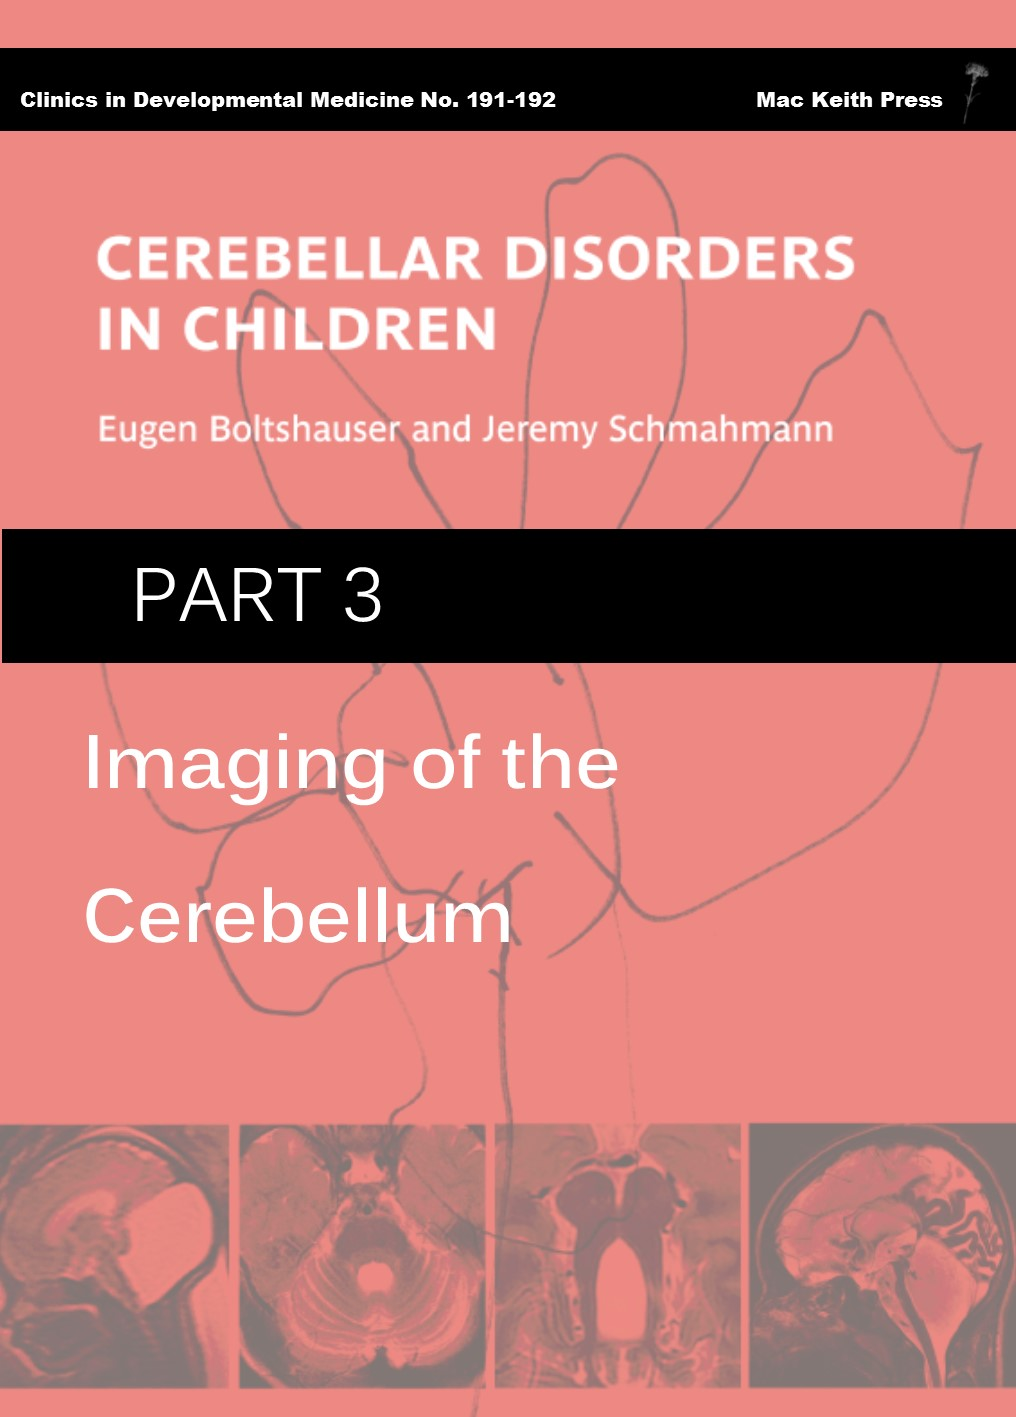 Cerebellar Disorders in Children - Part 3: Imaging of the Cerebellum COVER